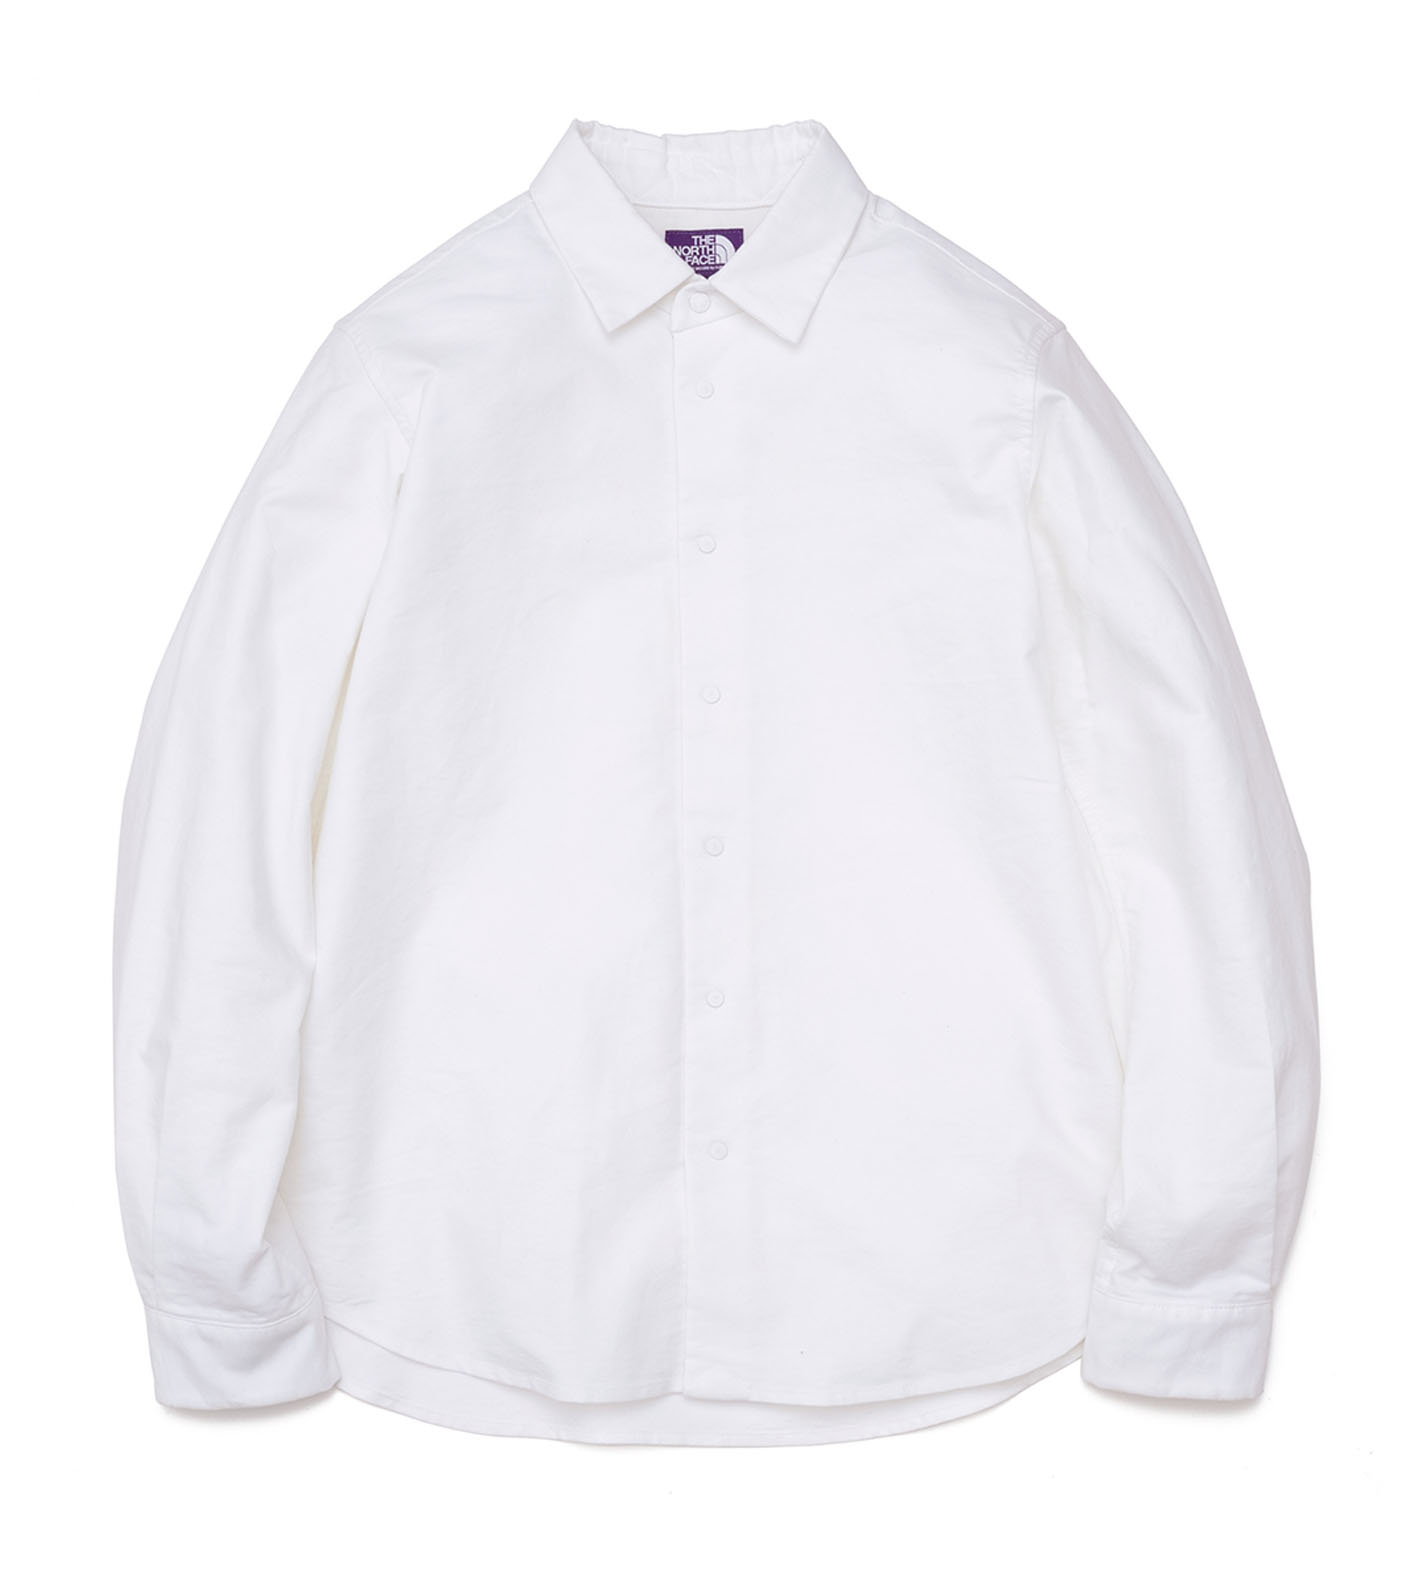 Cotton Polyester OX Shirt